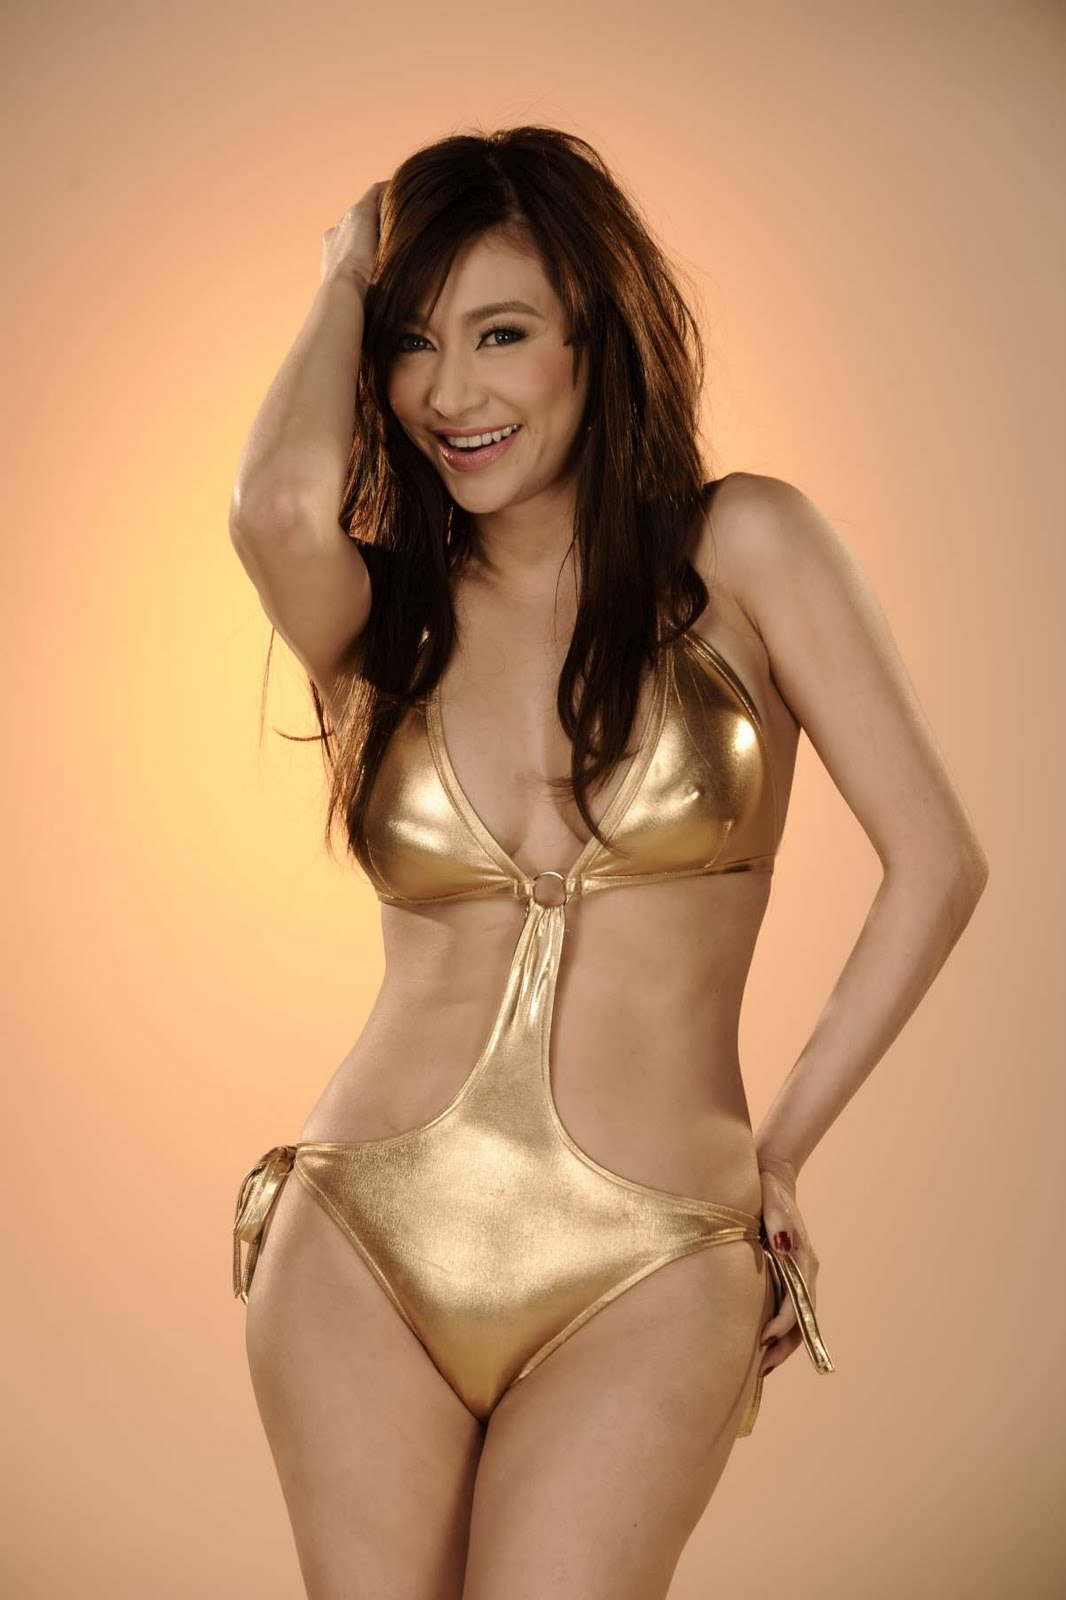 Rufa mae quinto is naked